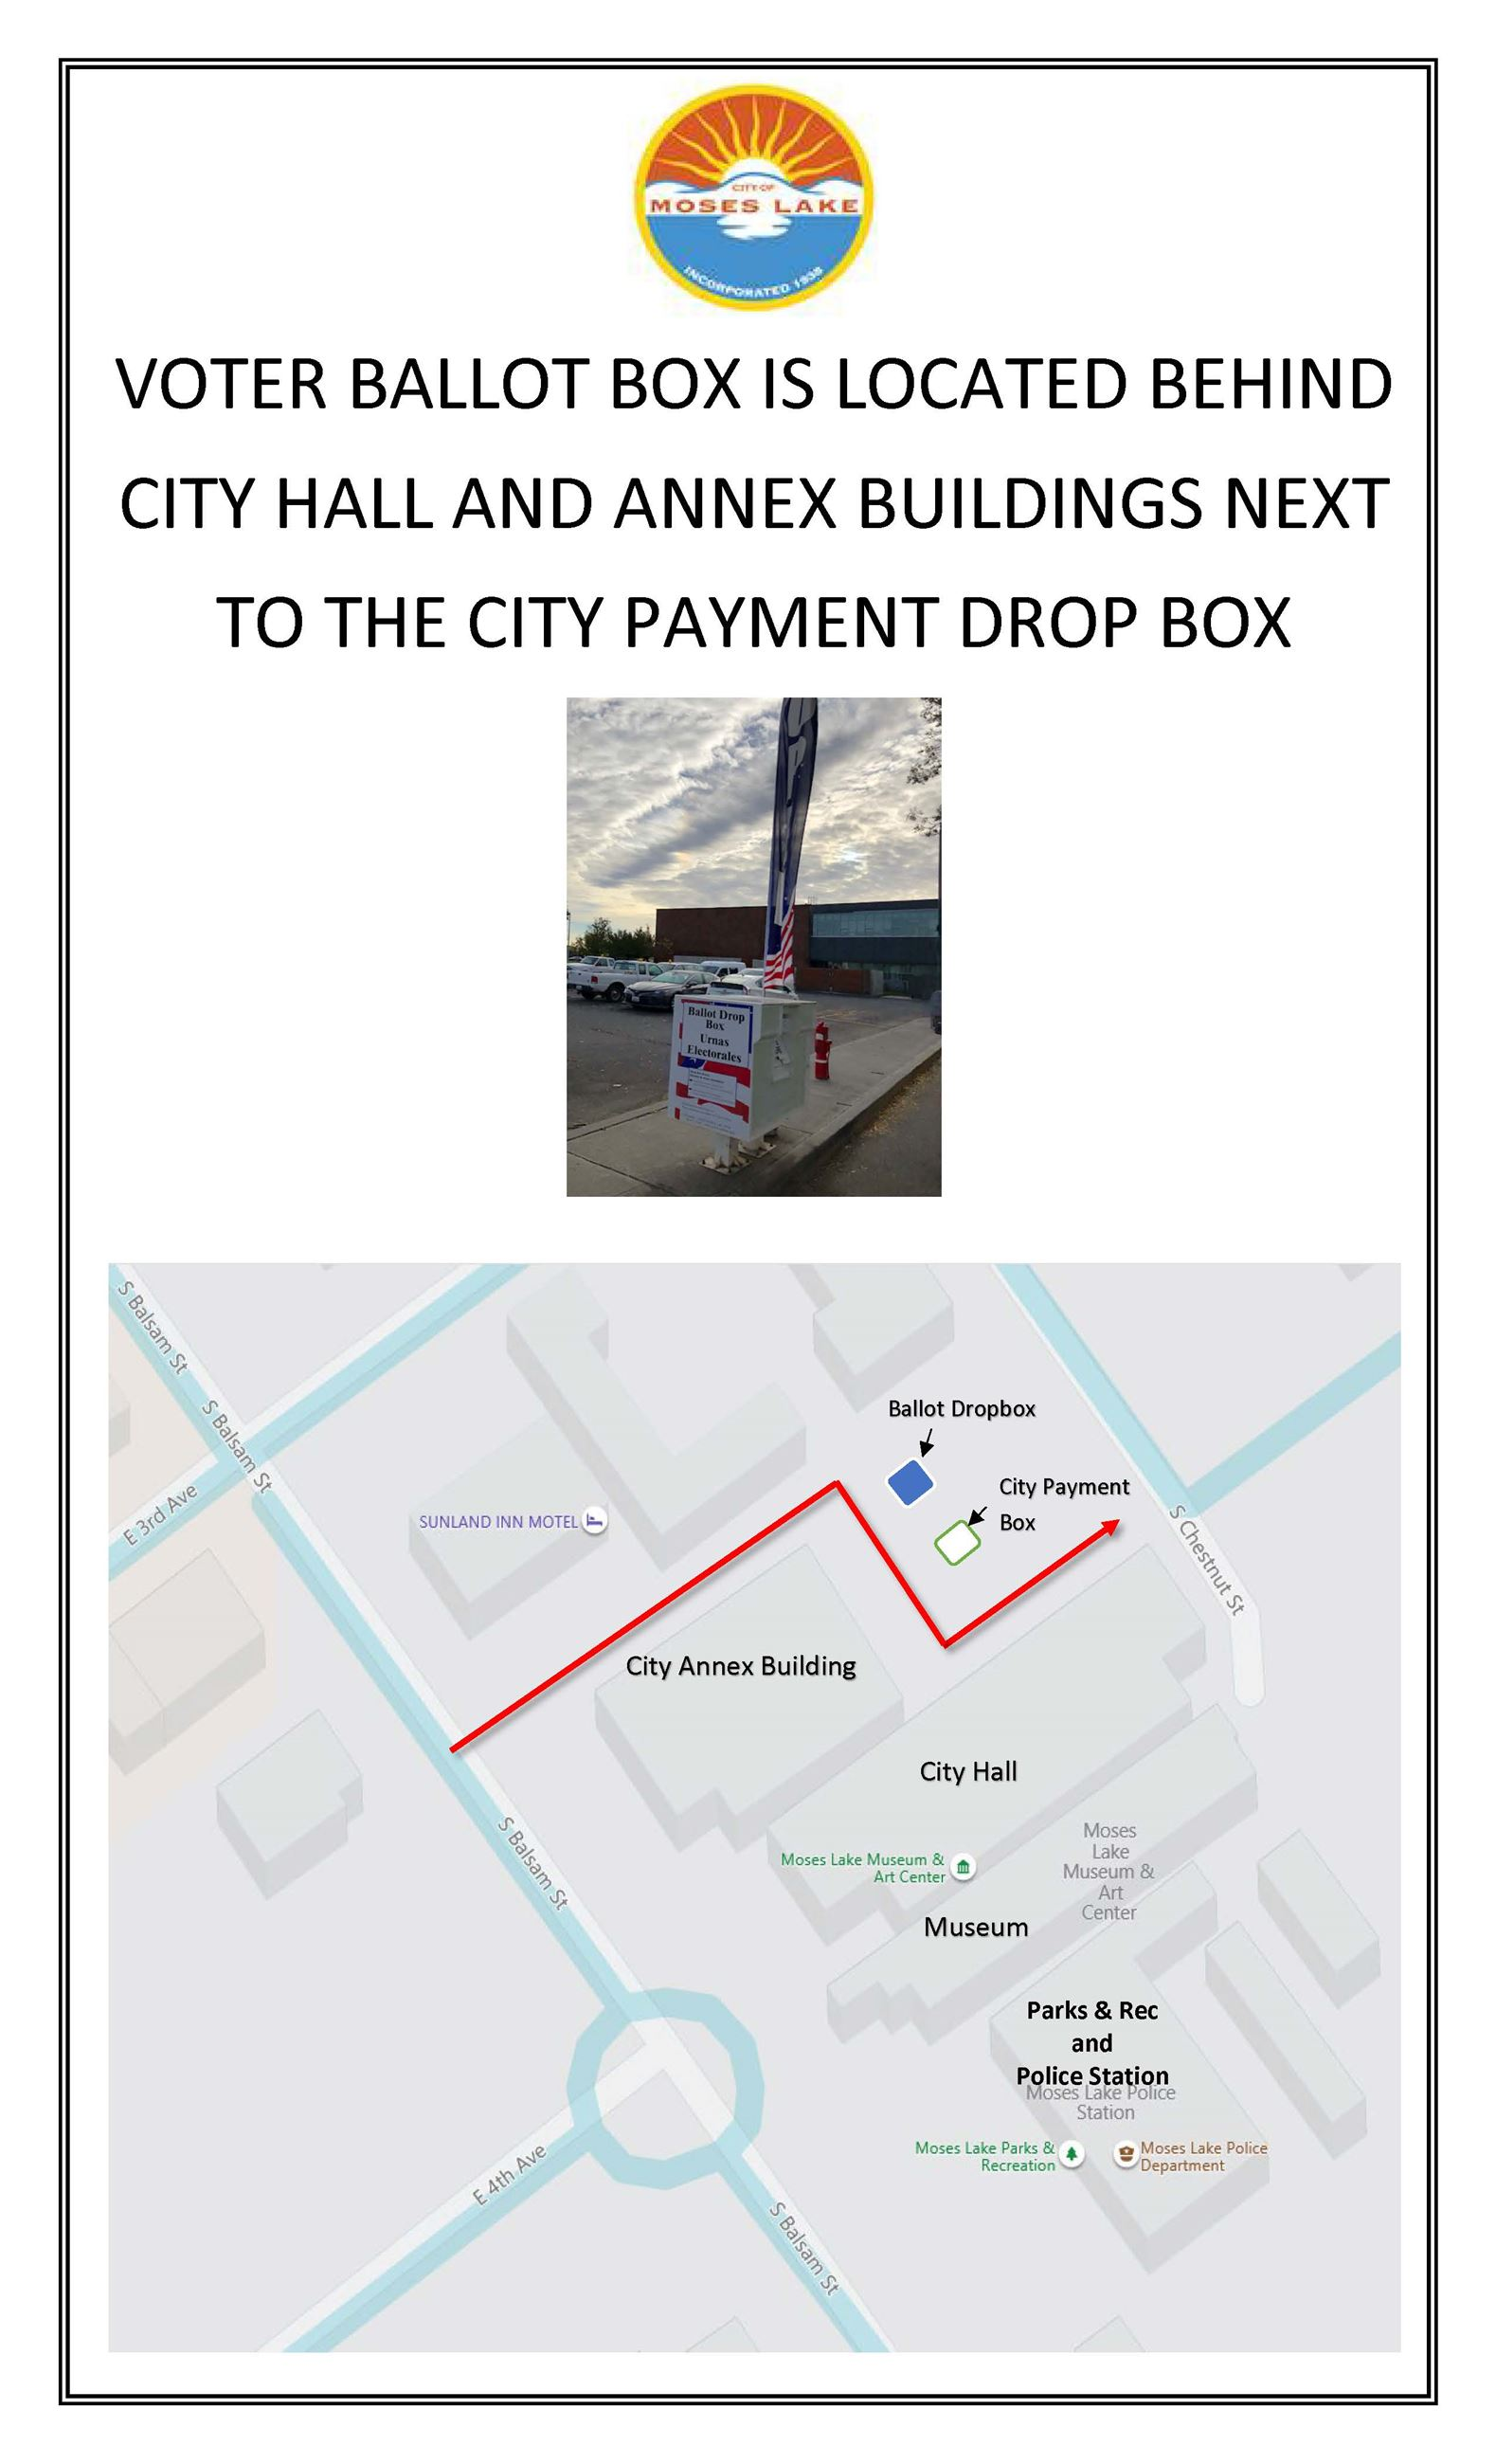 Ballot drop box is located behind City Hall, Annex buildings